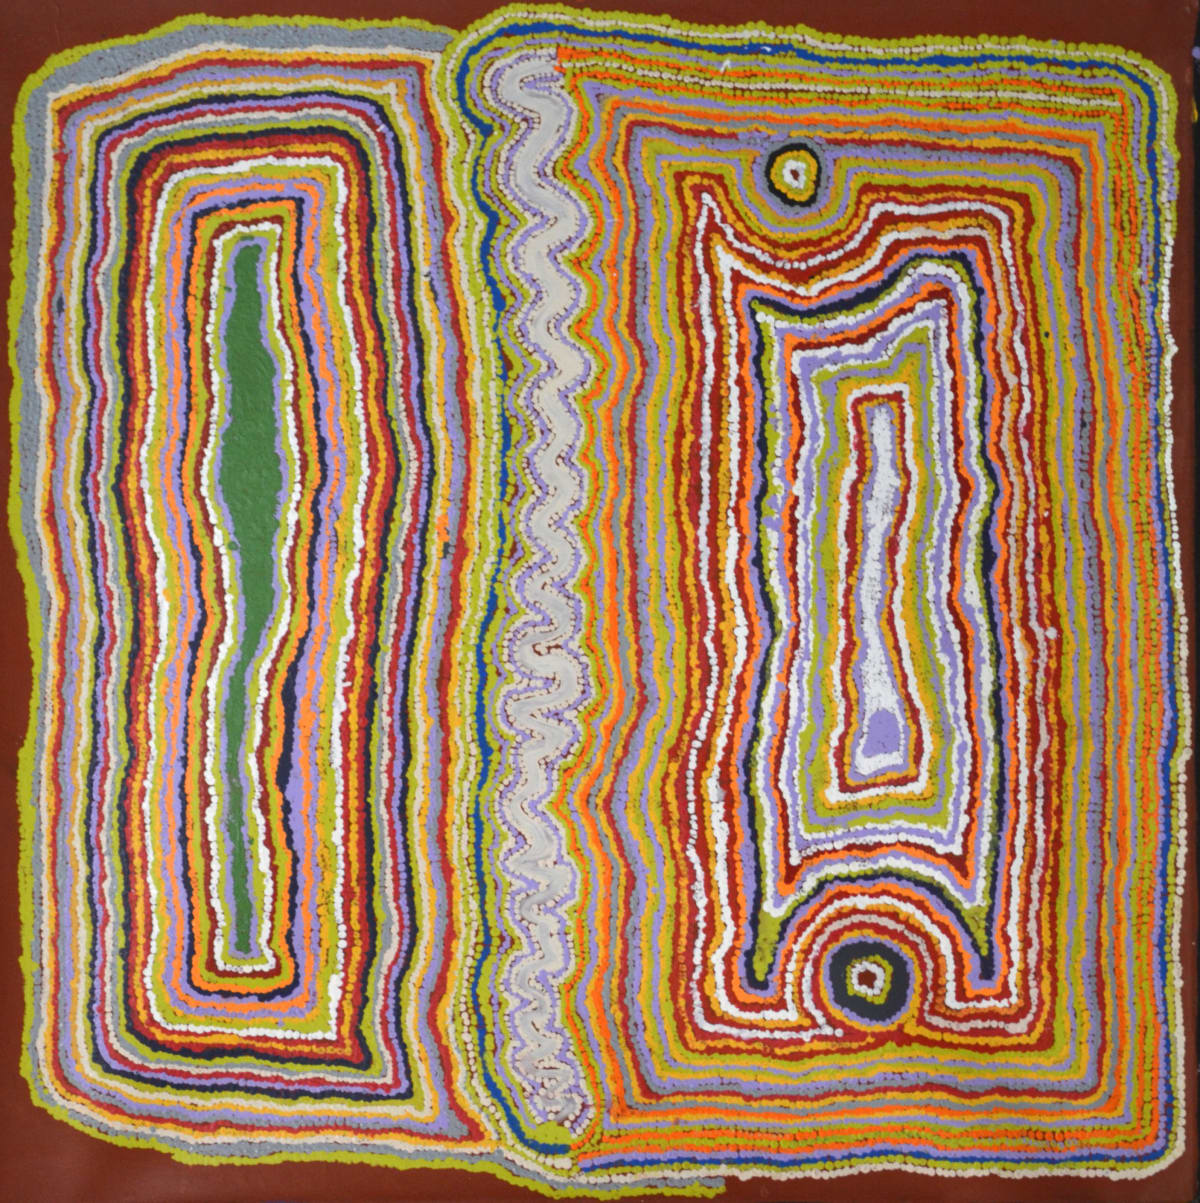 Jimmy Donegan Pukara acrylic on linen 122 x 121 cm